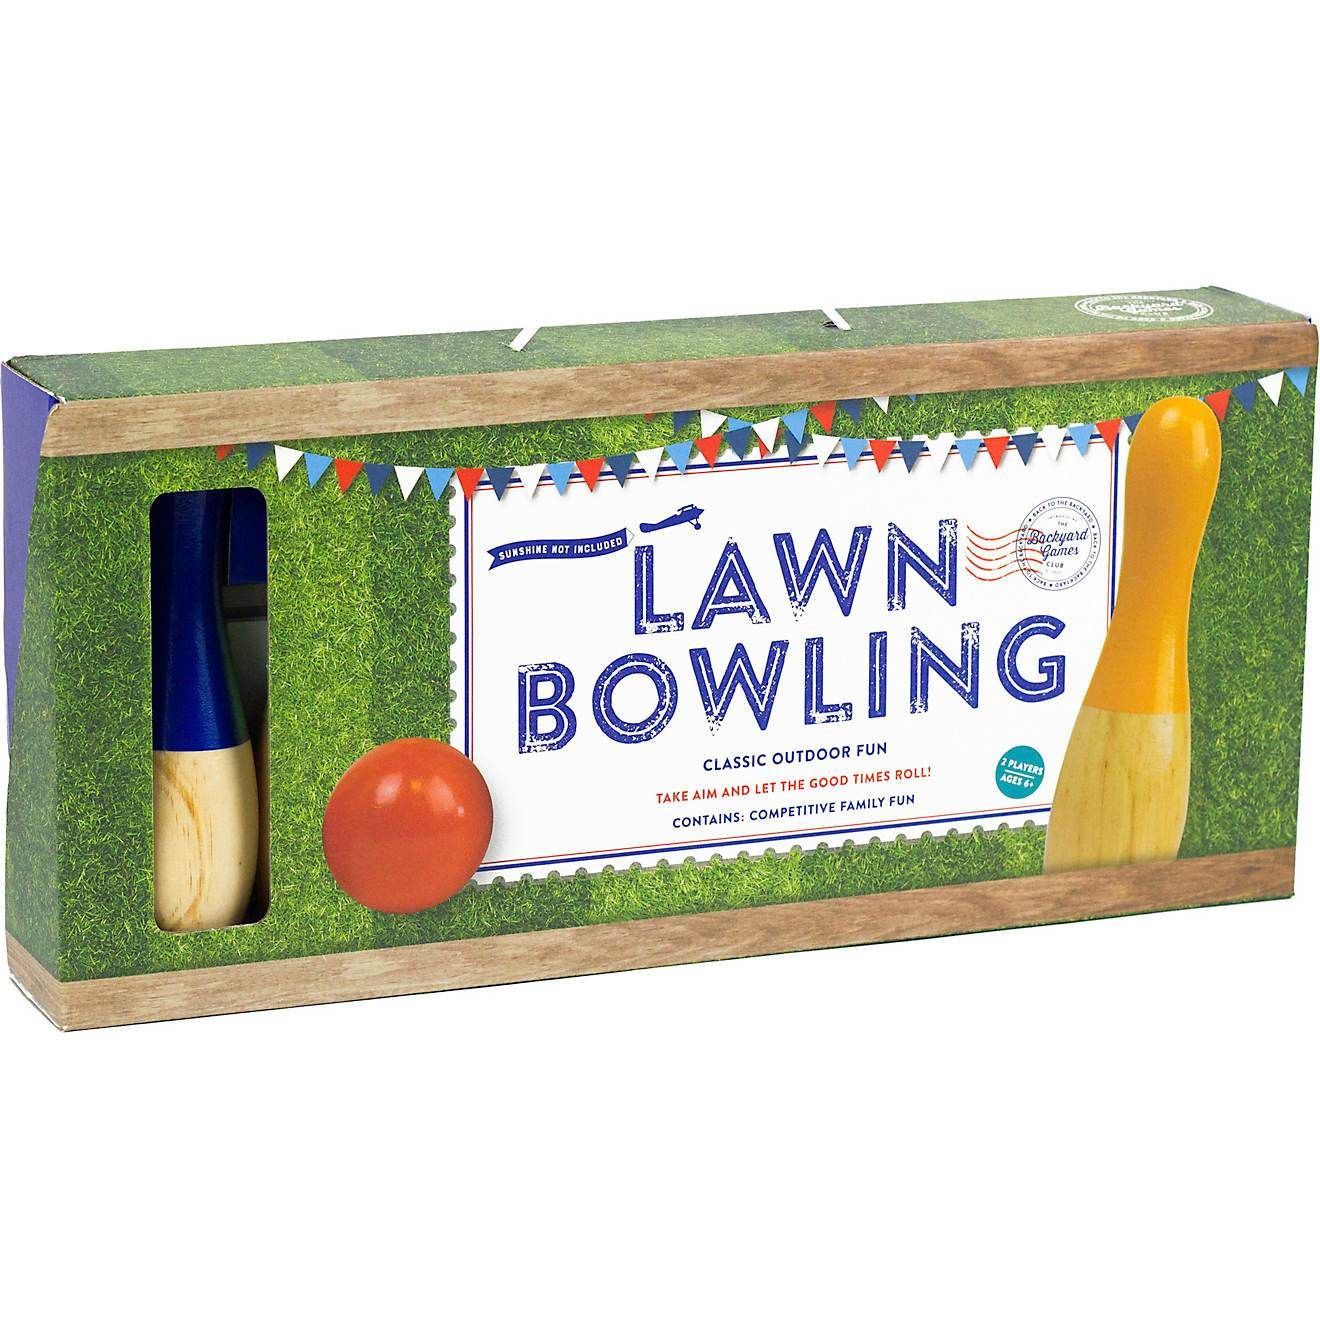 If you are having a gathering with family and friends, make sure you have this lawn bowling set! This set comes with 6 wooden pins and a wooden ball to let you and your guests enjoy a rousing game of bowling from the comforts of your backyard. Ages 6+